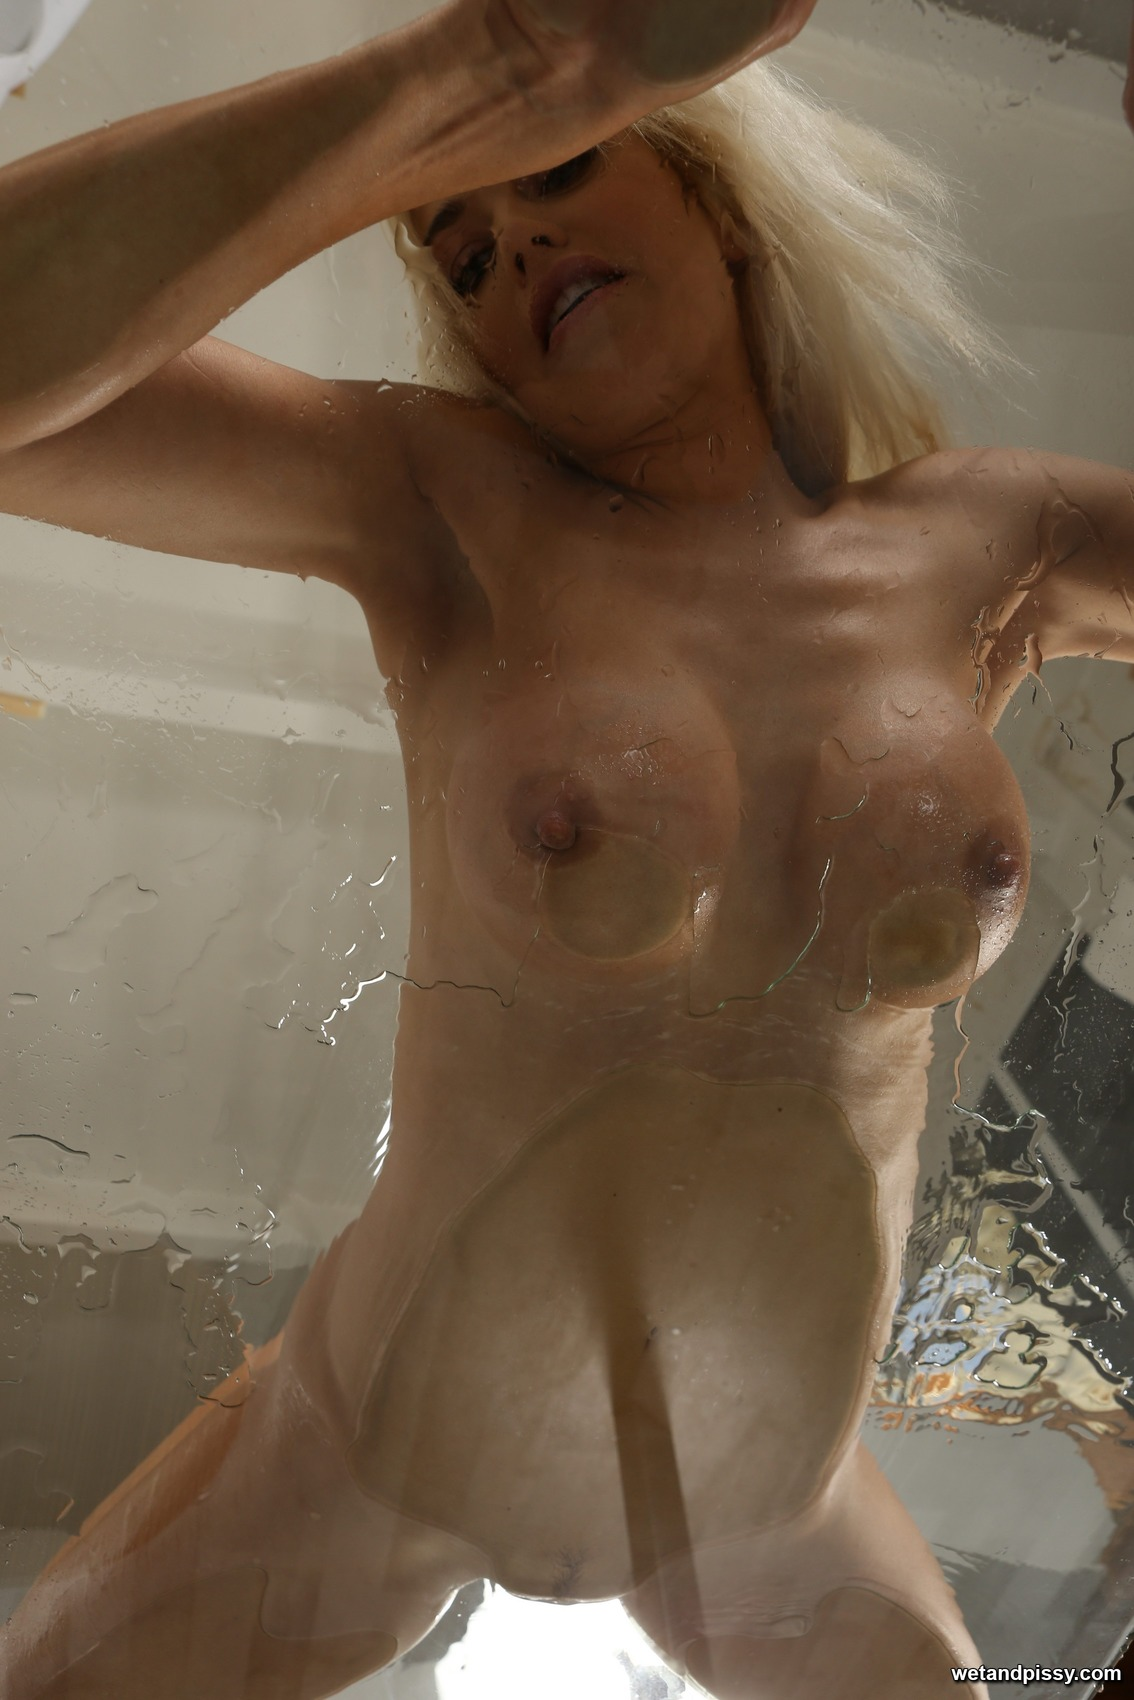 Piss soaked Lena Love toys her wet juicy pussy 117842